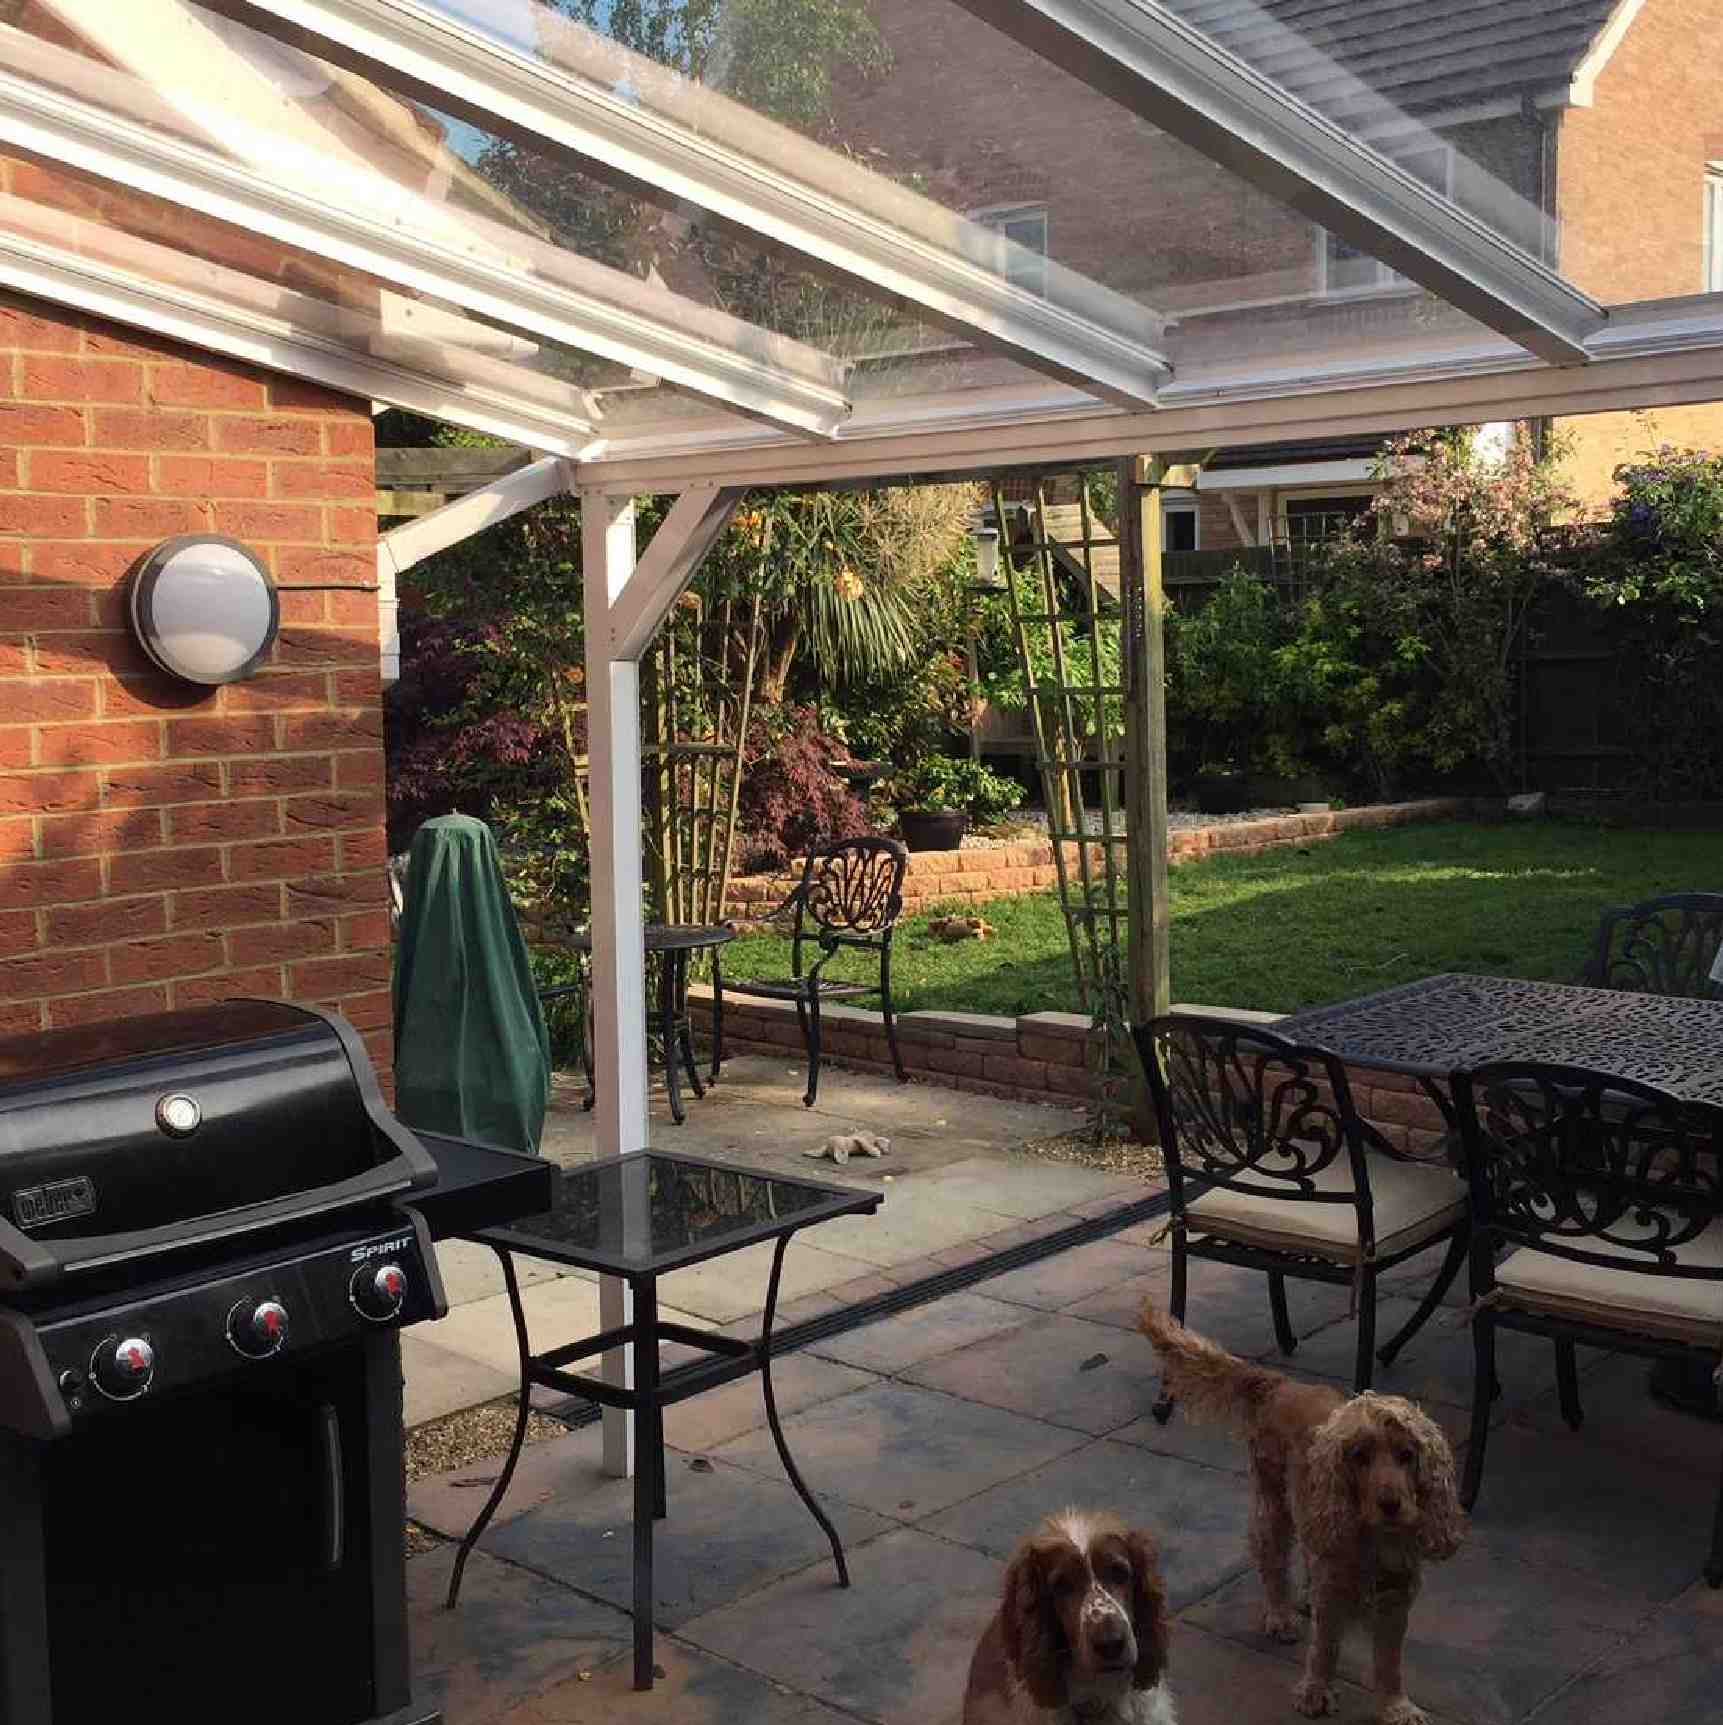 Omega Verandah with 16mm Polycarbonate Glazing - 3.5m (W) x 4.0m (P), (3) Supporting Posts